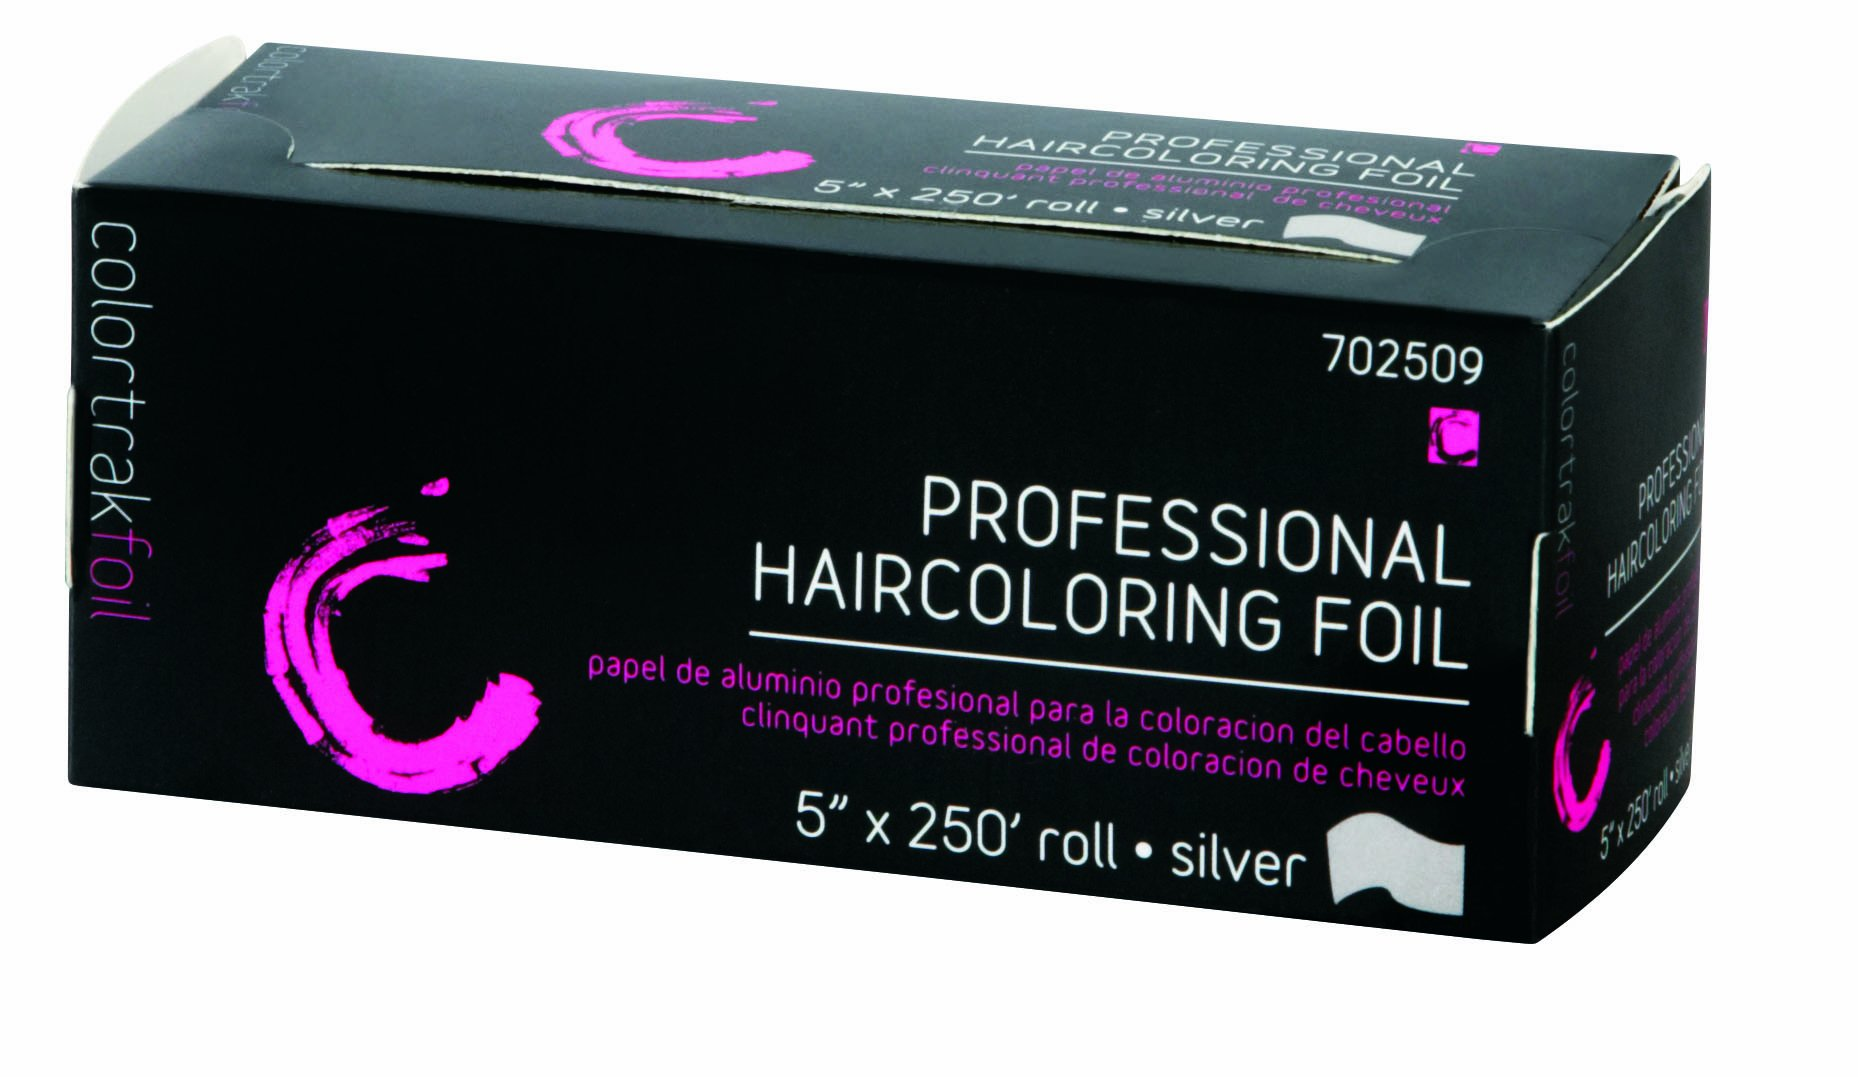 Colortrak Professional Highlighting Foil, Silver (Pack of 2 5